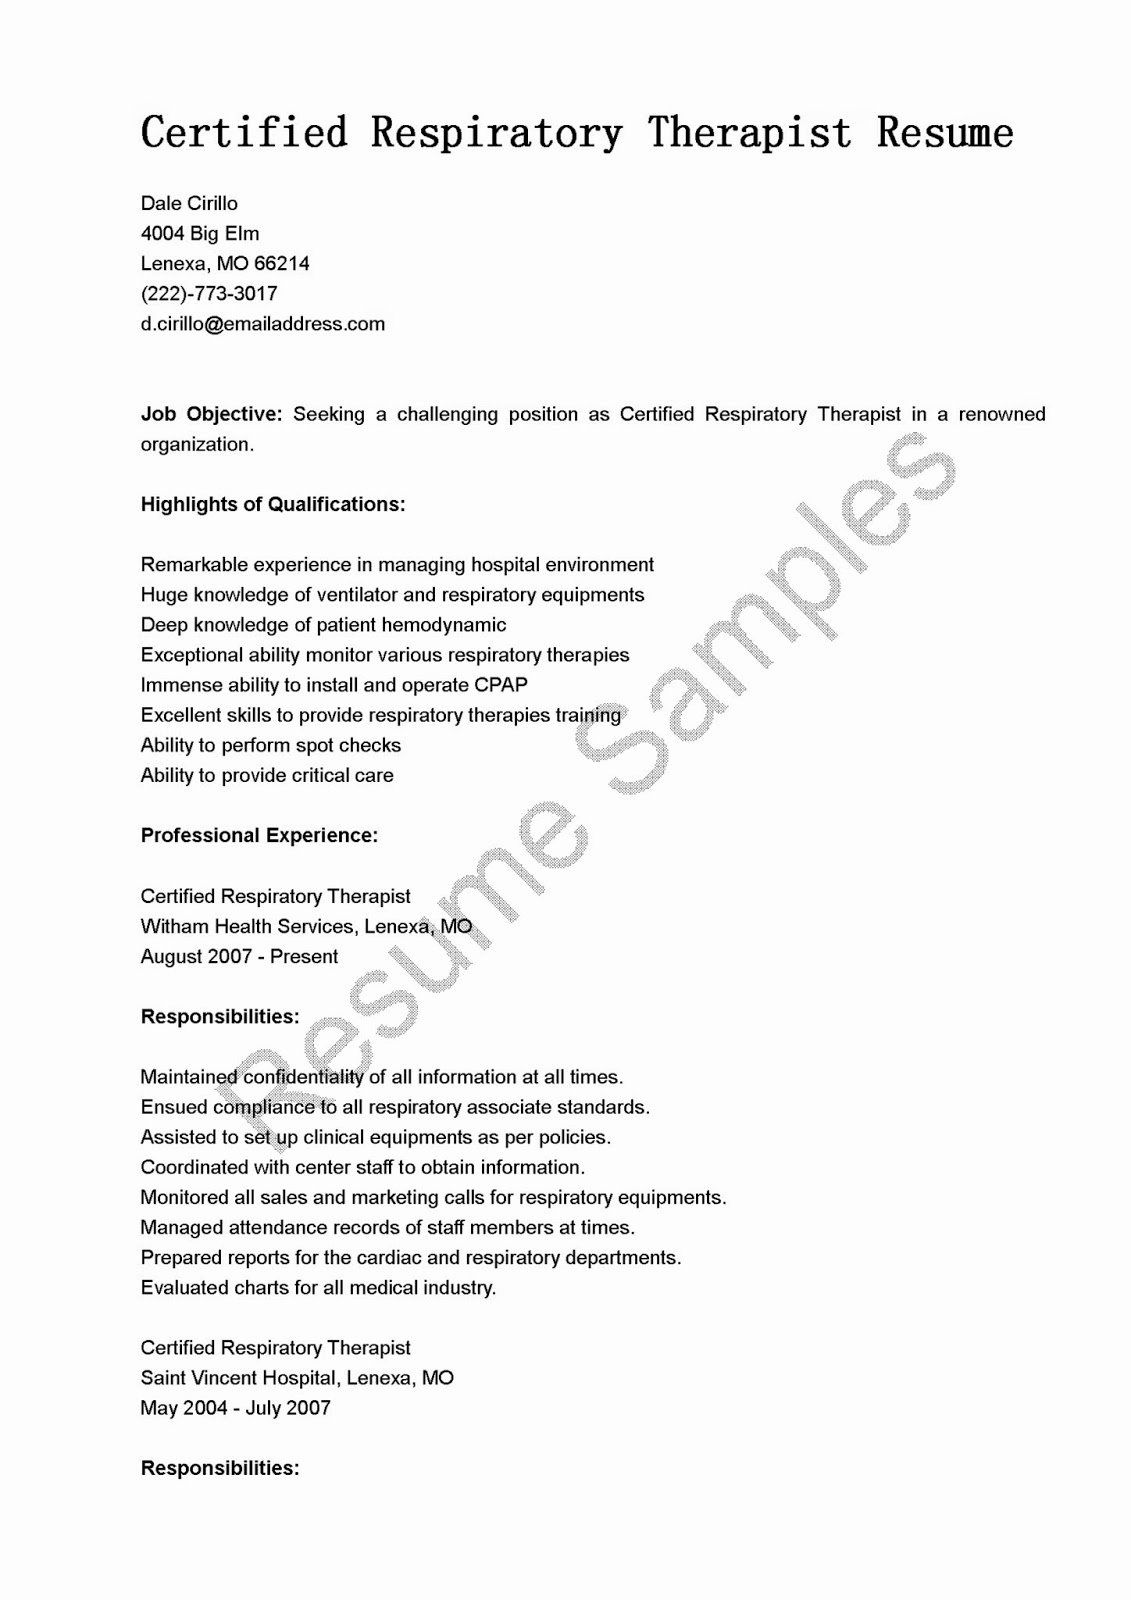 25 Respiratory therapist Resume Template in 2020 Resume